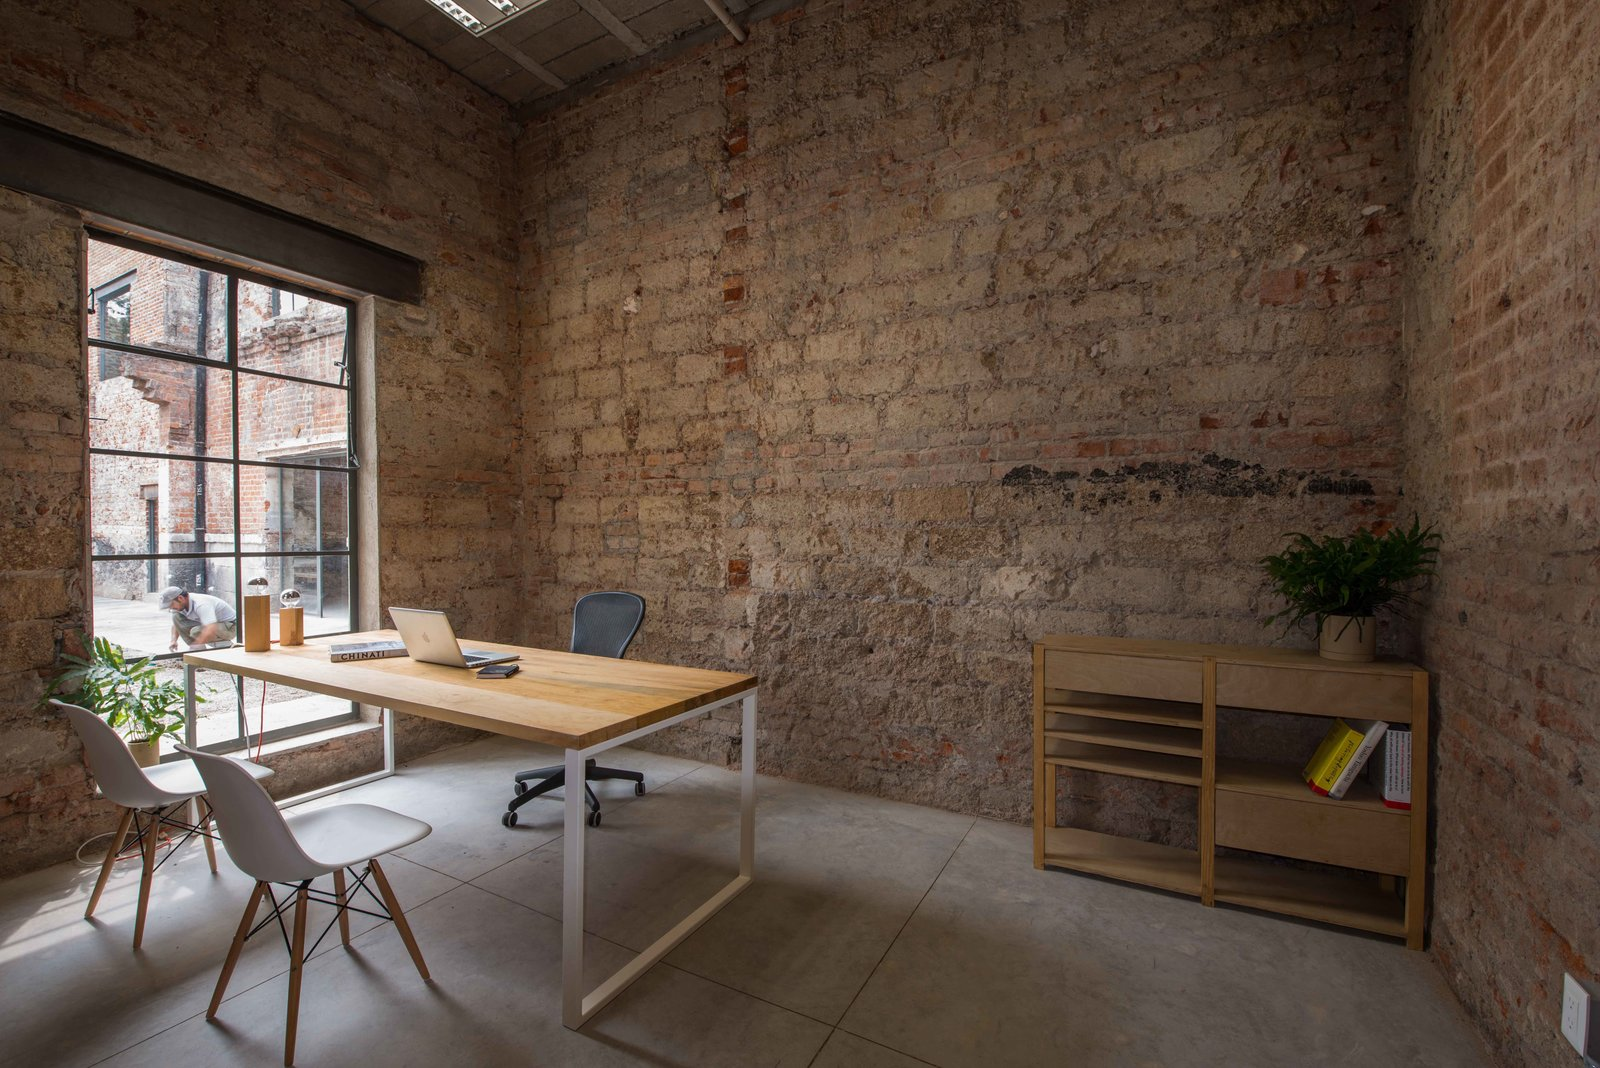 The firm added some windows to direct attention to the interior garden area. Eames shell chairs and an Aeron chair from Herman Miller surround a custom desk.  exposed brick from Modern Office Space Carved Out of a Crumbling Brick Building